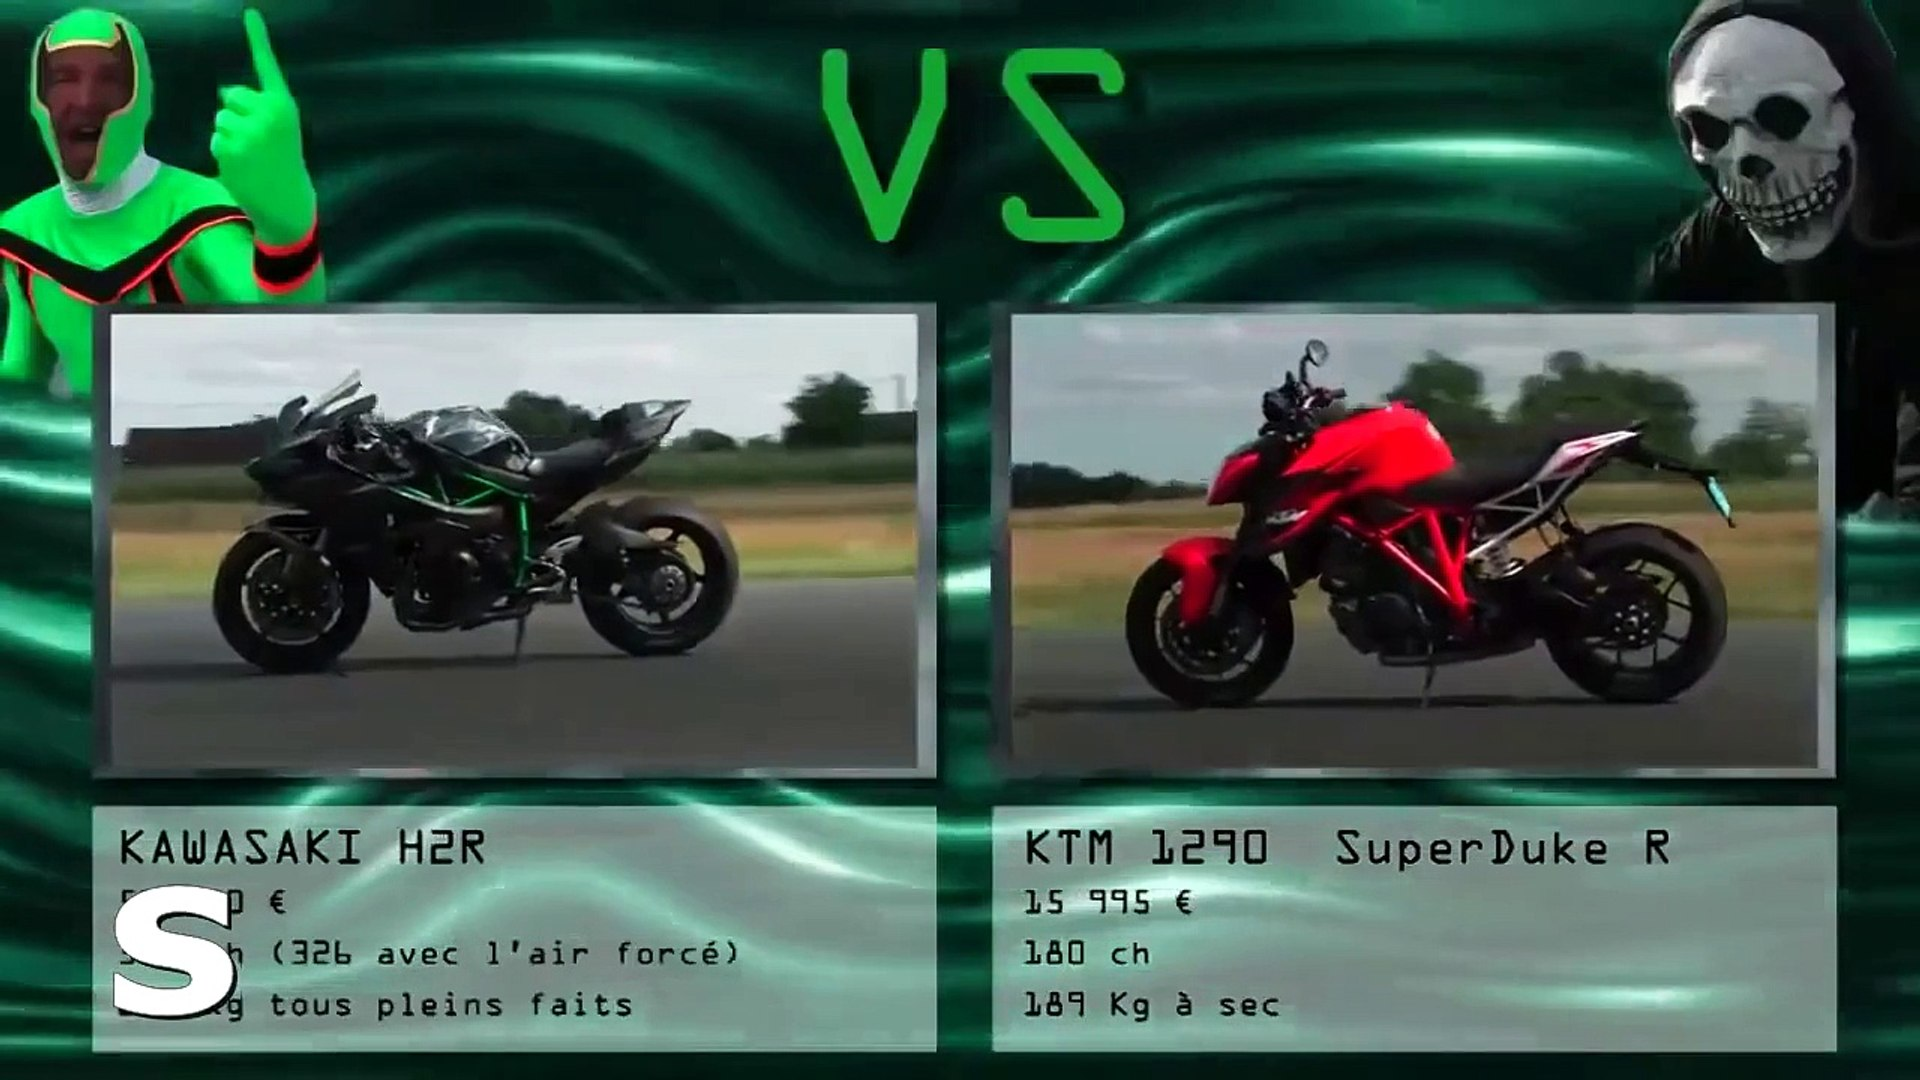 2015 Kawasaki H2r Vs Ktm Superduke R Suzuki Hayabusa Kart Mercedes Amg Gts Bmw S1000 Rr Dailymotion Video